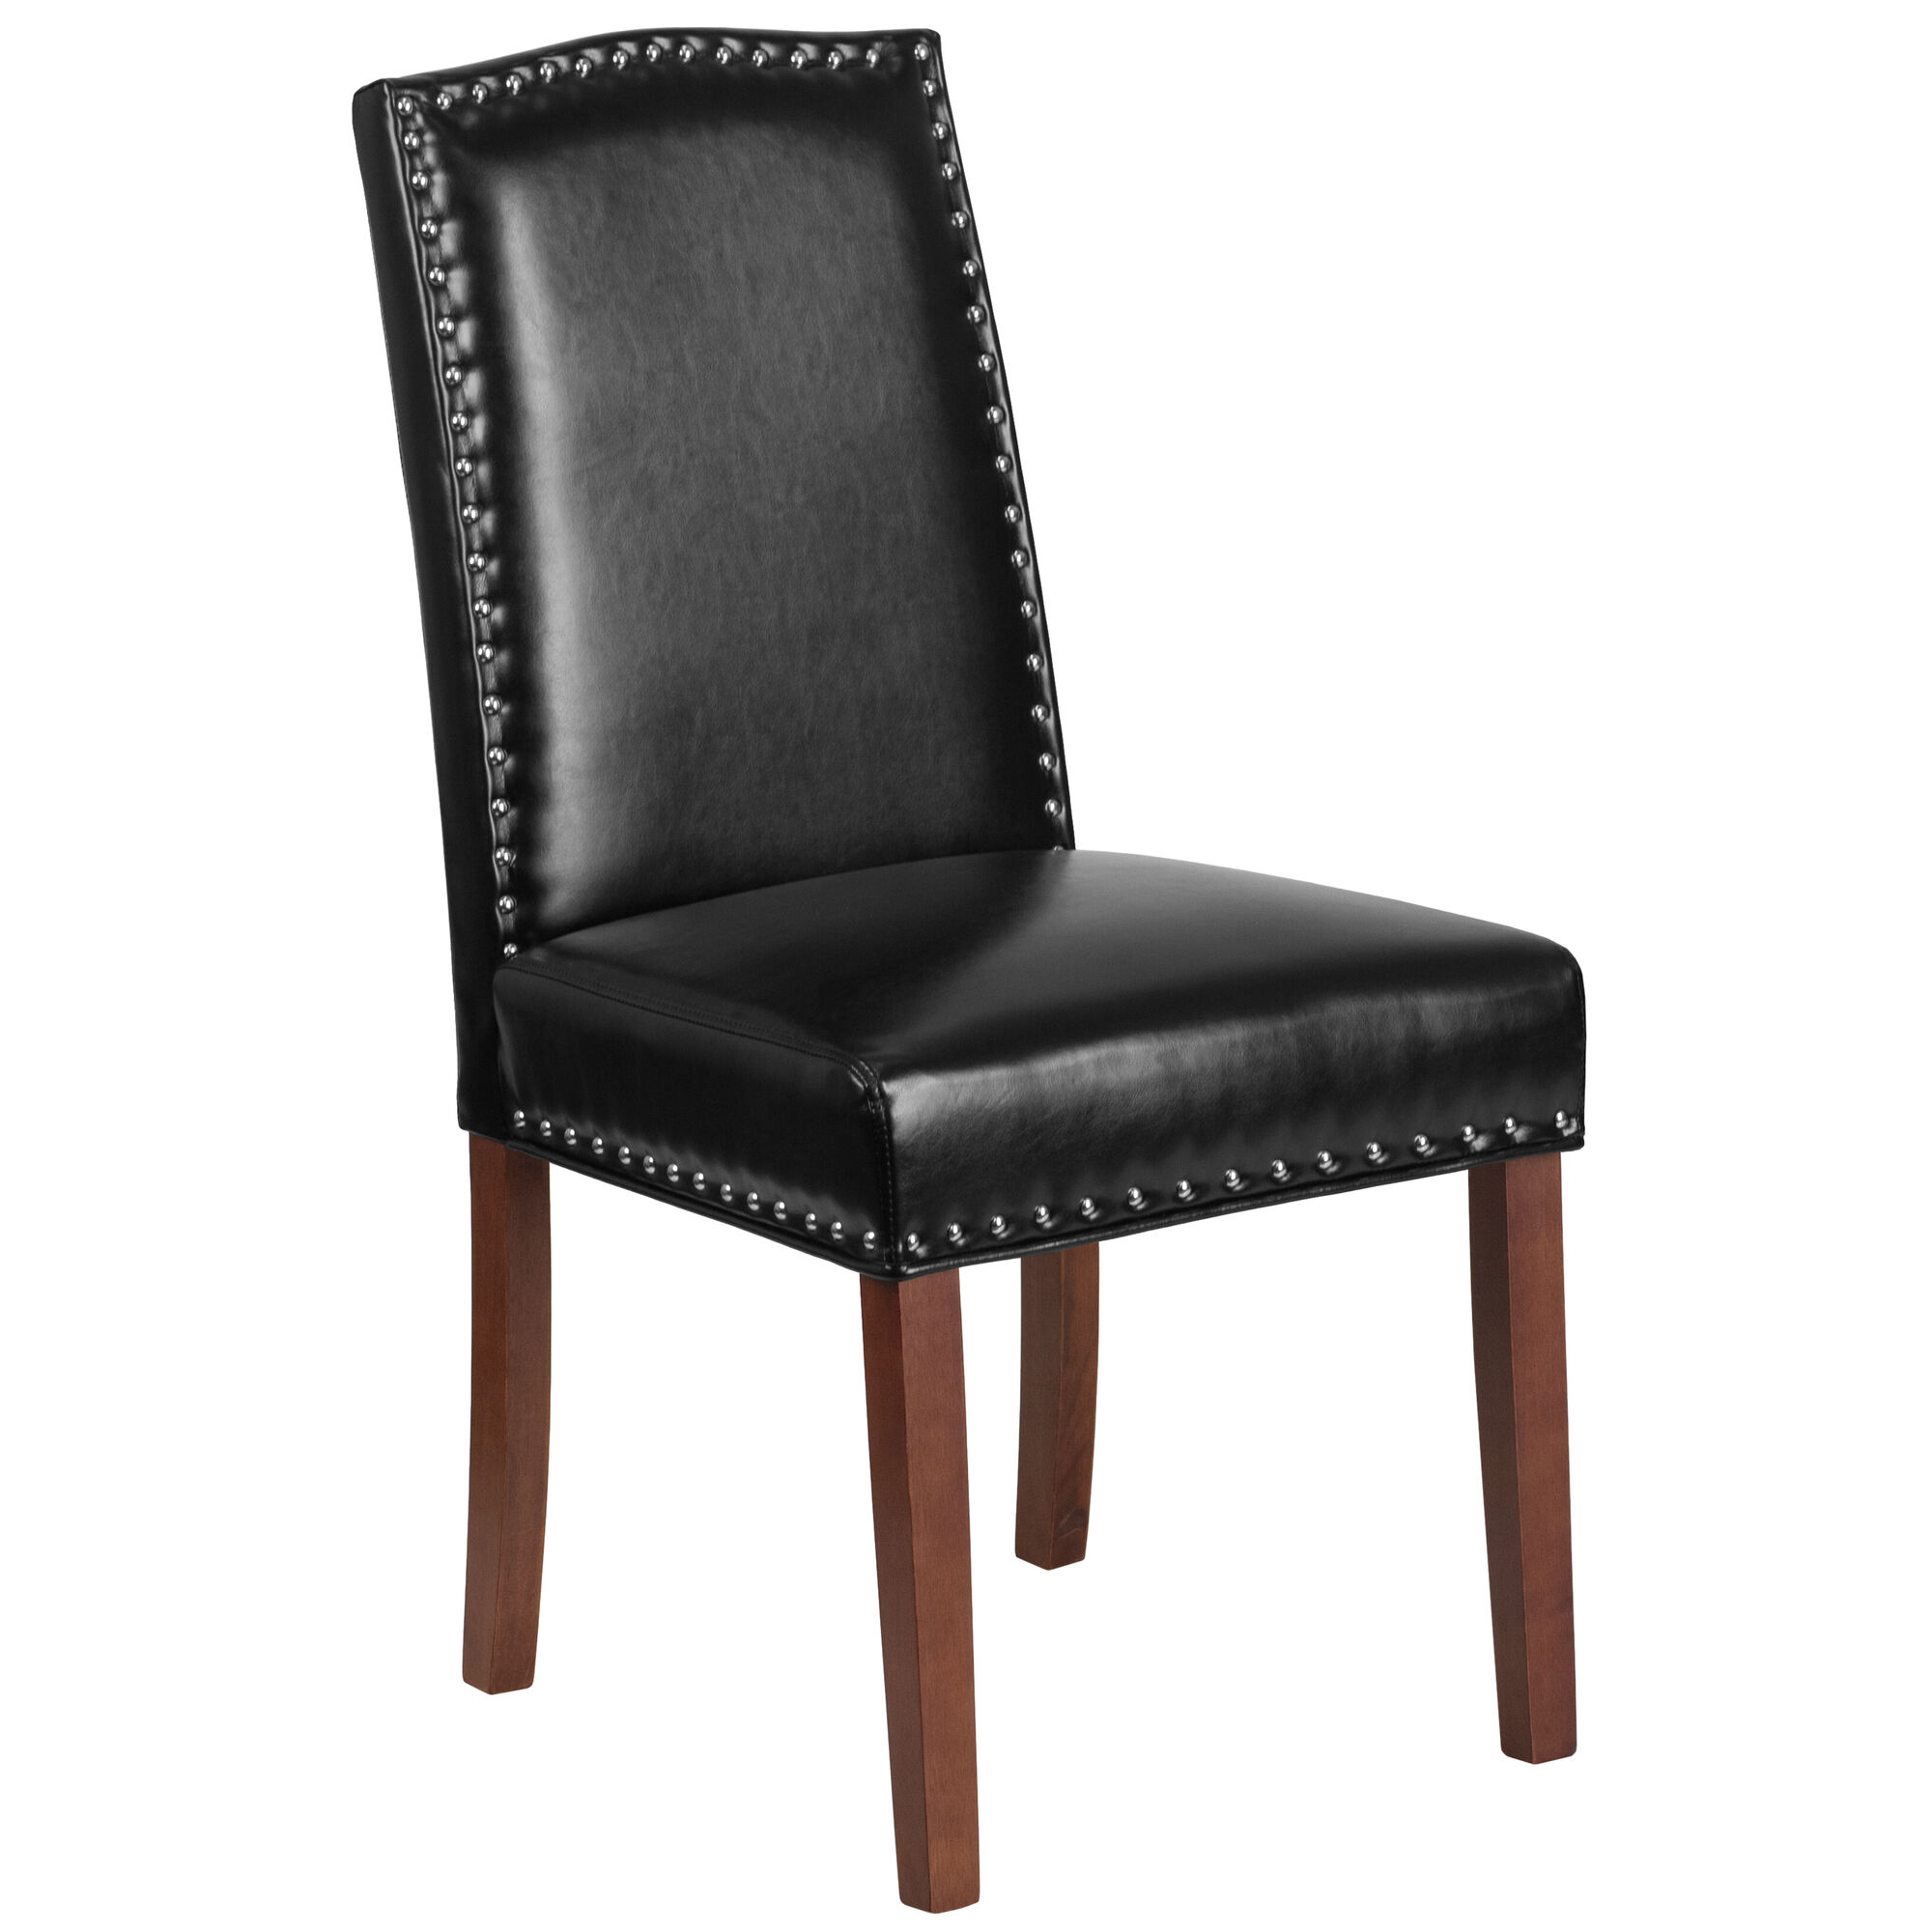 Black Leather Parsons Chair Qy A13 9349 Bk Gg Bizchair Com